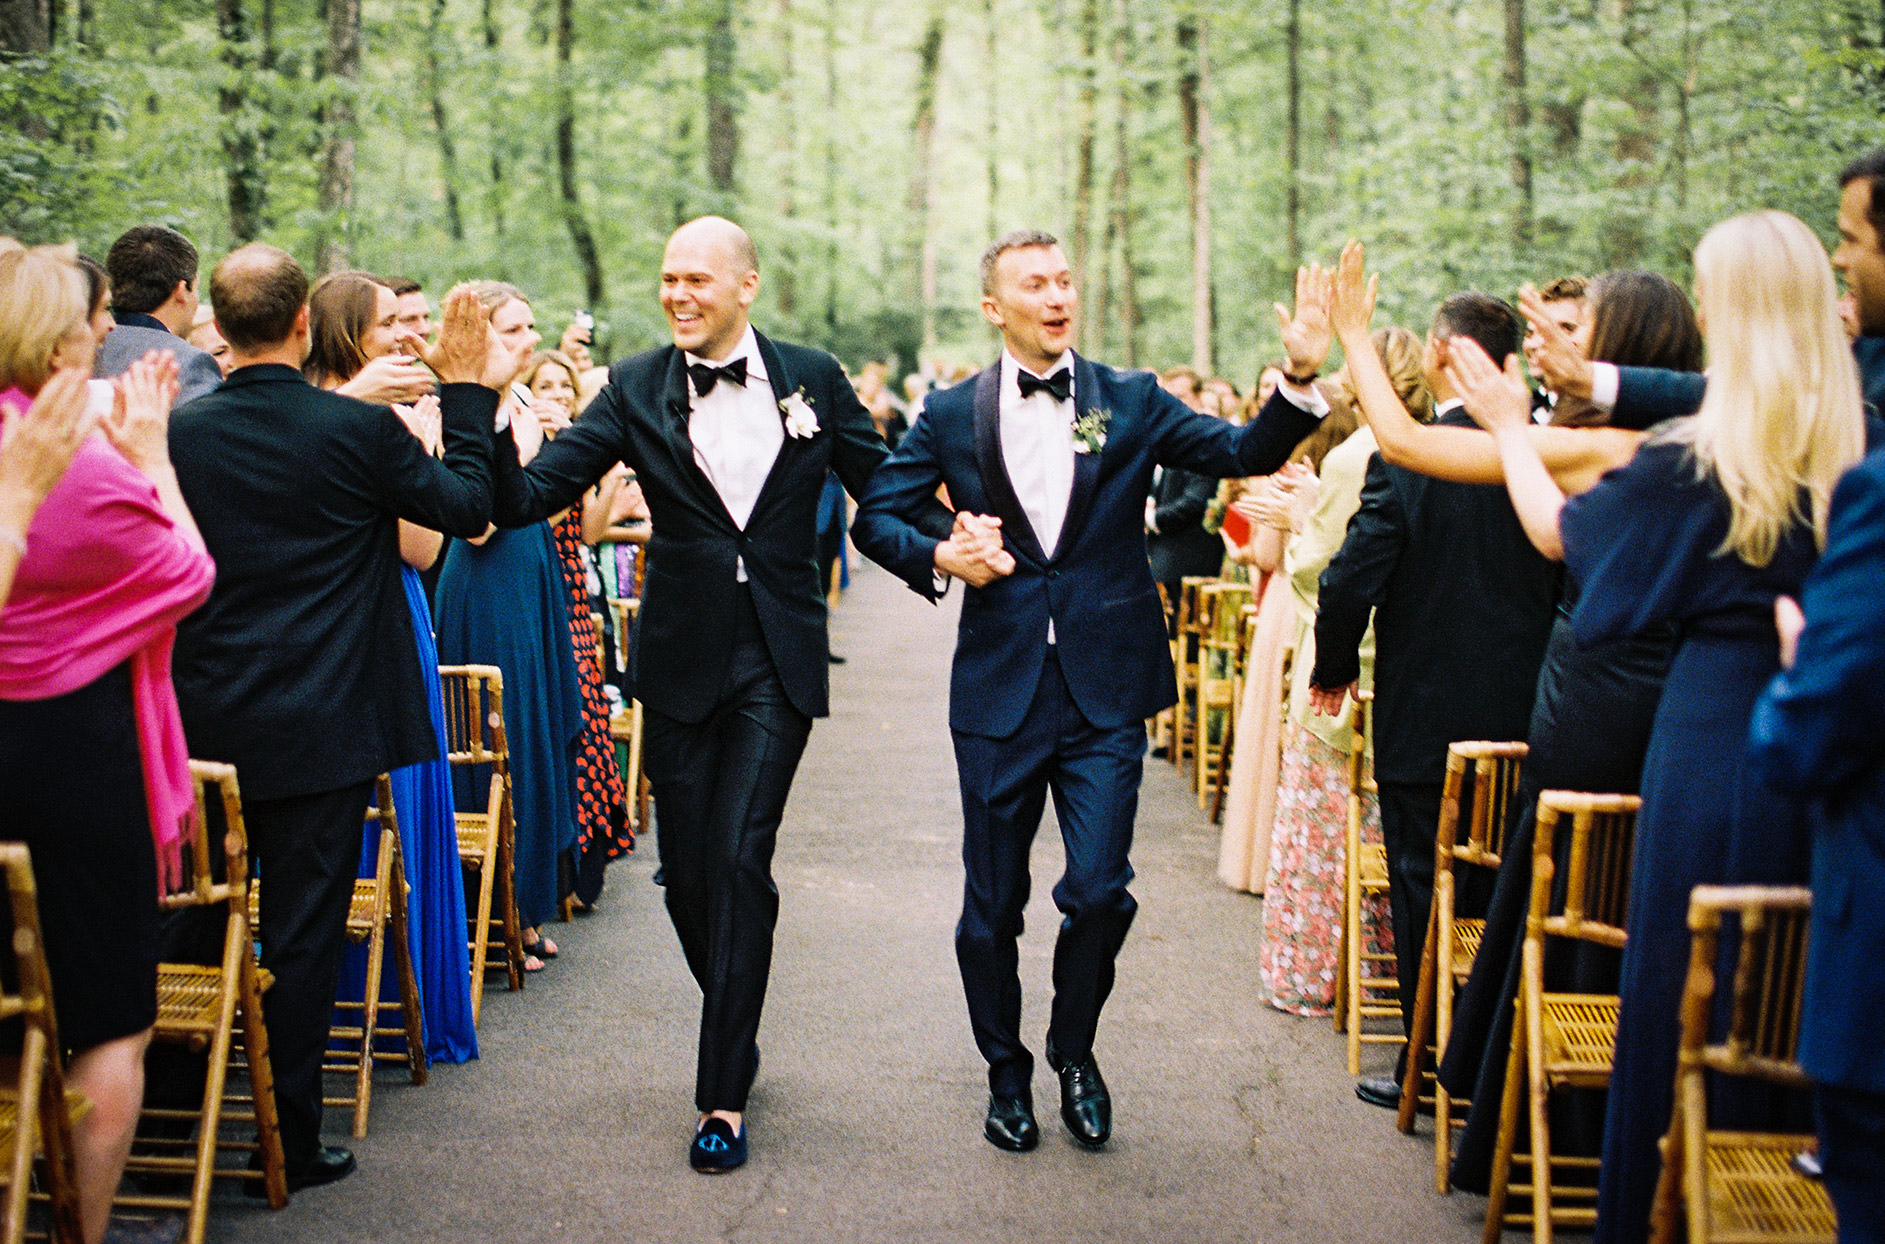 grooms recessing after ceremony and giving guests high fives